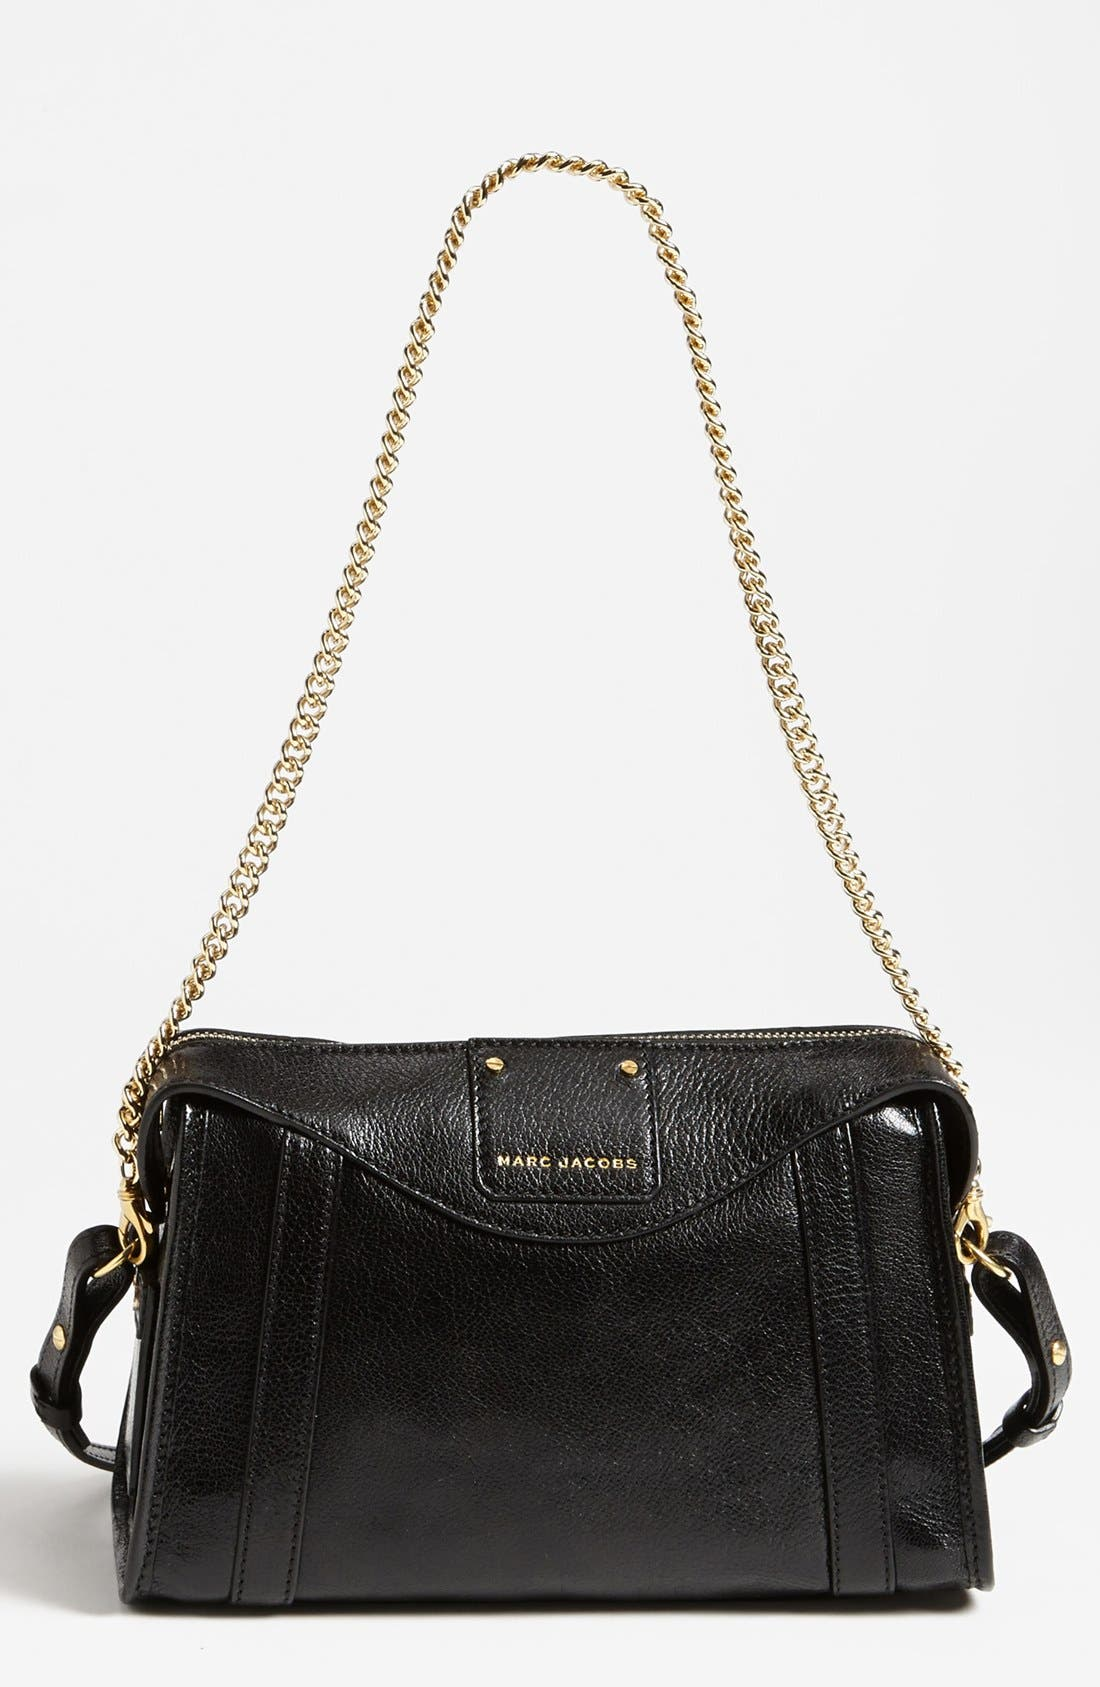 Alternate Image 1 Selected - MARC JACOBS 'Wellington - Peggy' Leather Crossbody Bag